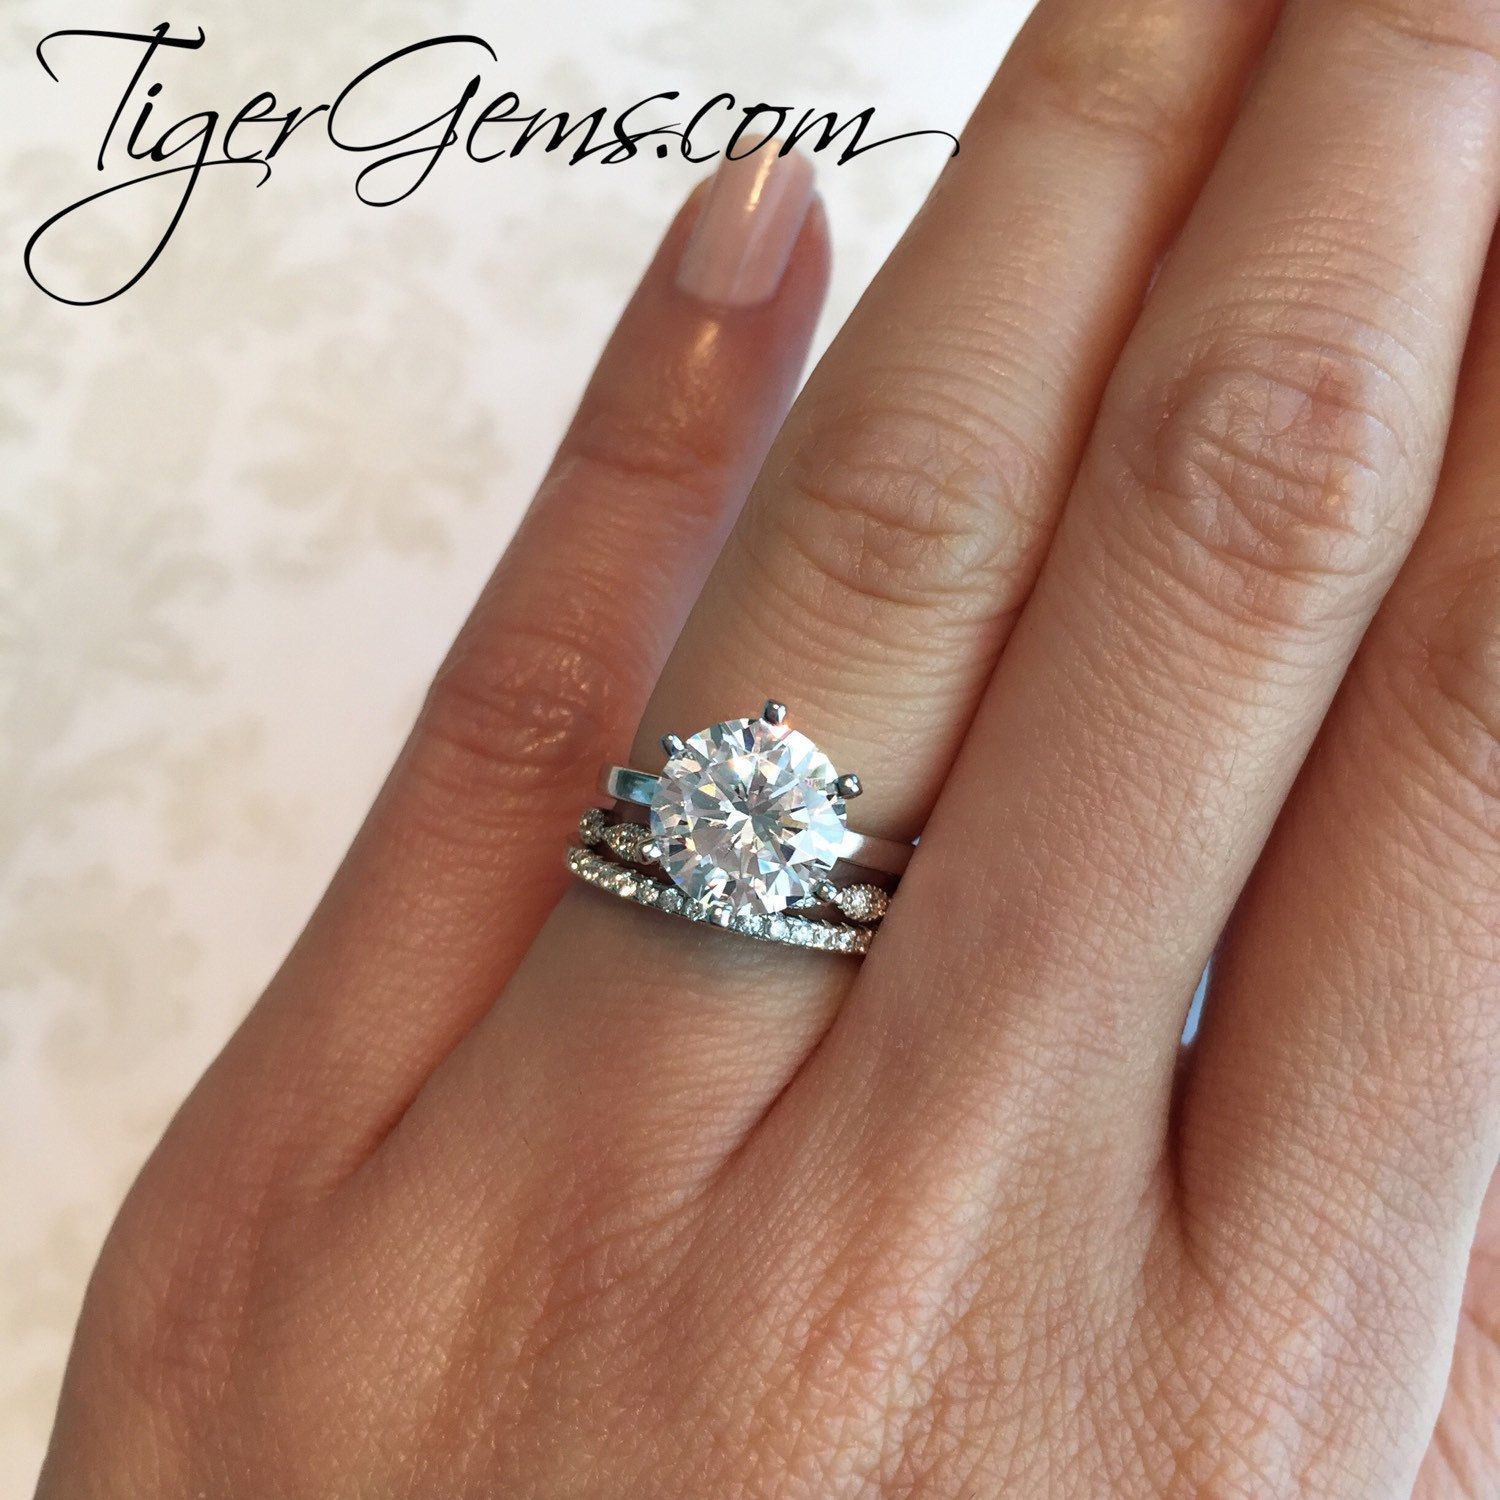 Tigergemstones Shared A New Photo On Etsy Round Solitaire Engagement Ring Women Rings Wedding Rings Solitaire